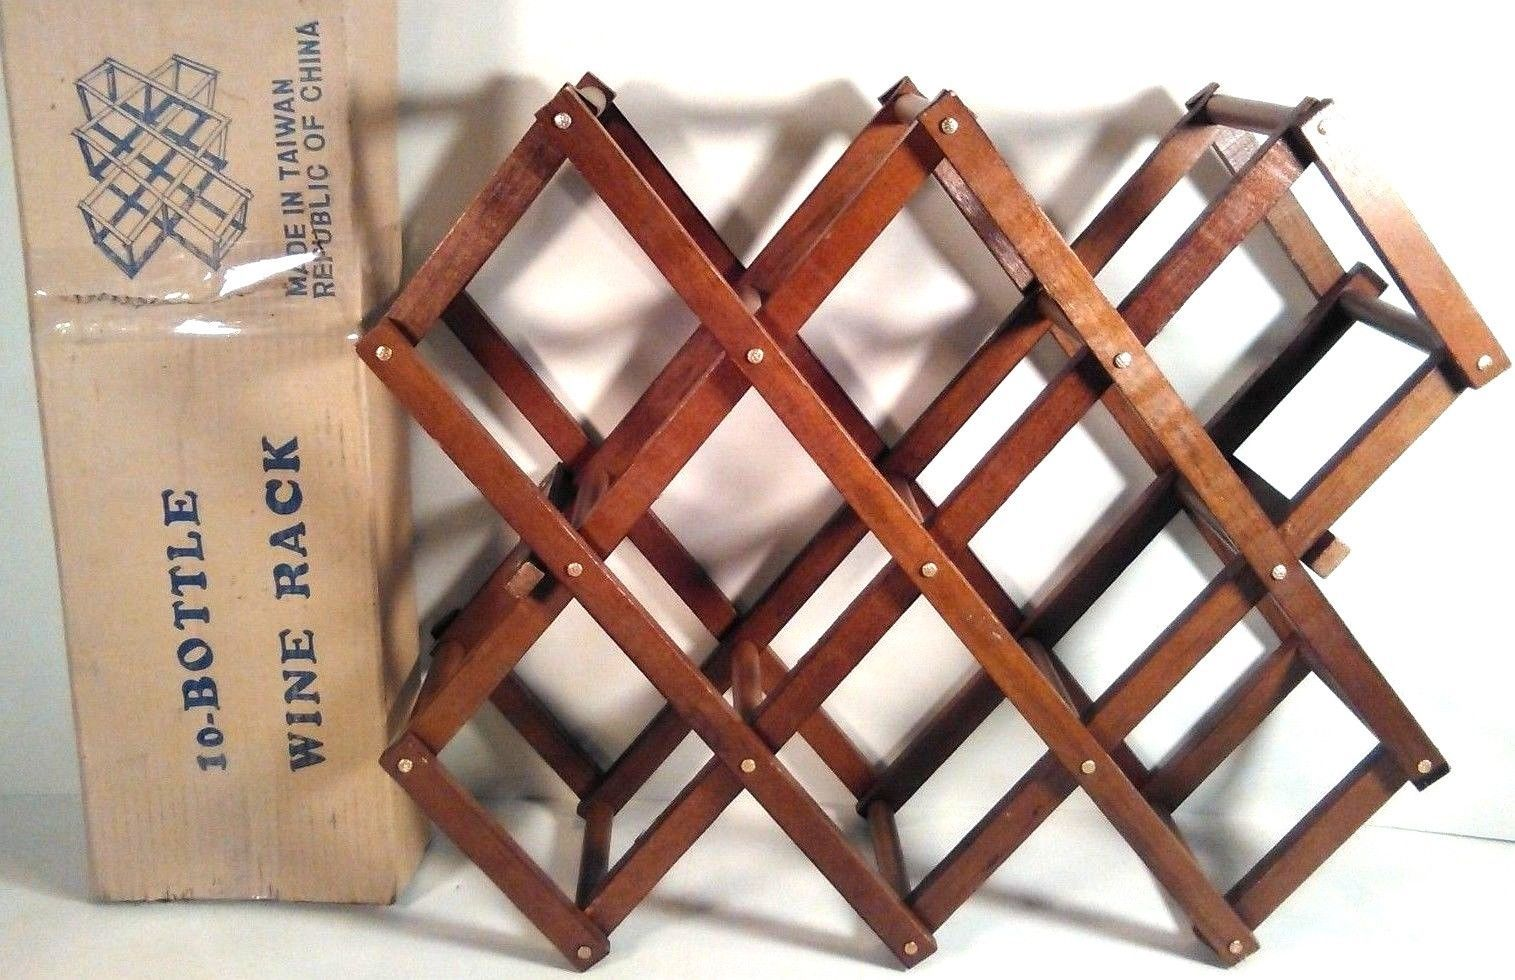 NEW 10 BOTTLE WOOD WOODEN WINE BOTTLE RACK HOLDER FOLDING COLLAPSIBLE USA SELLER